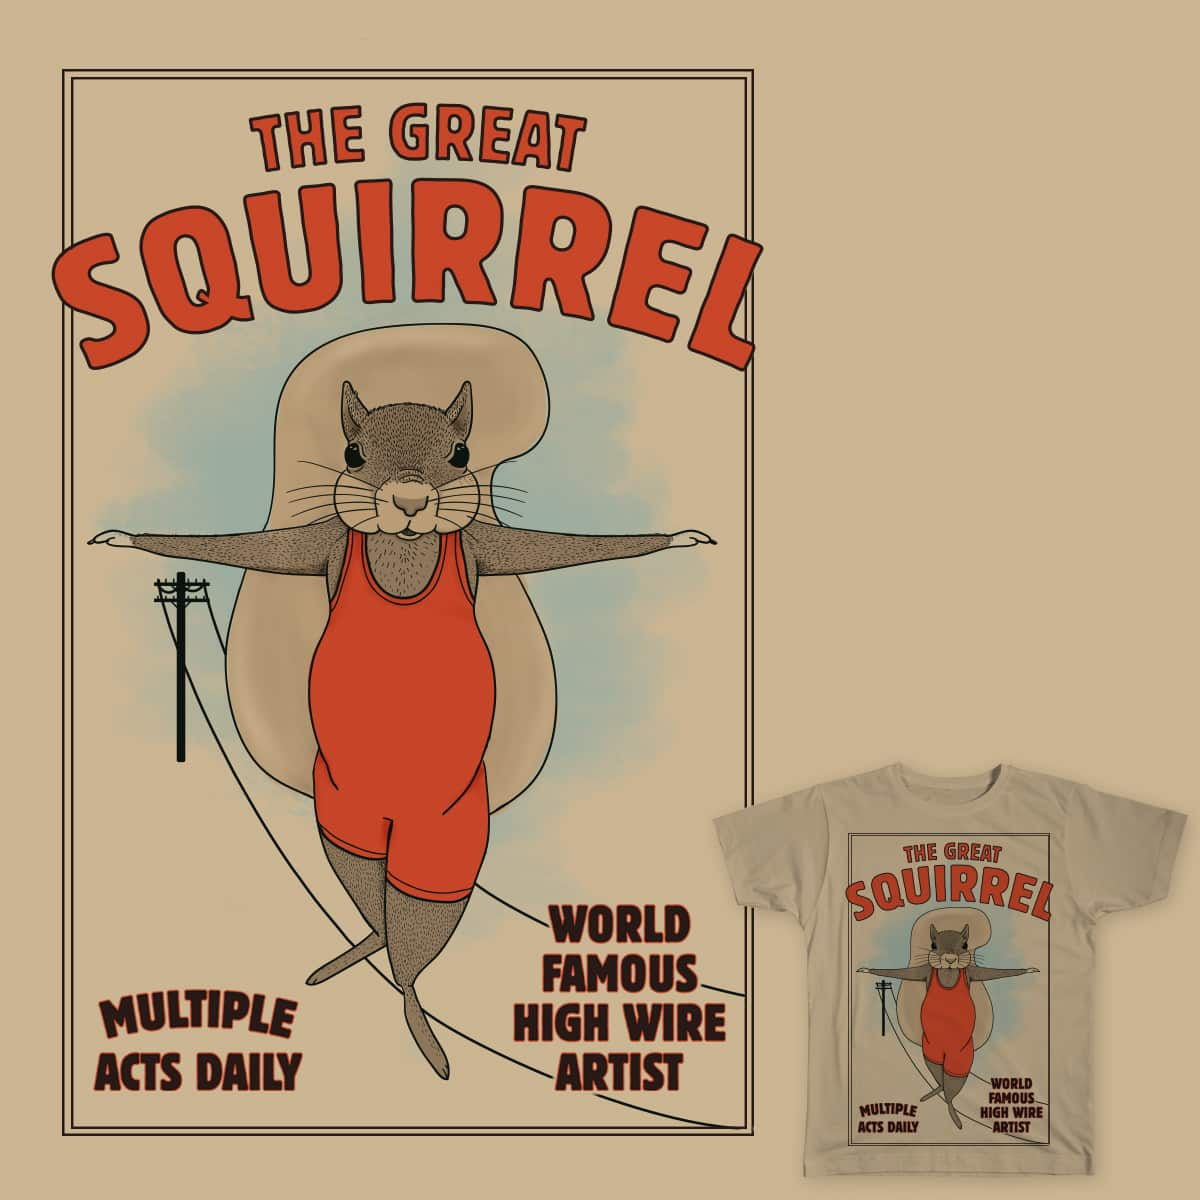 The Great Squirrel by murraymullet on Threadless